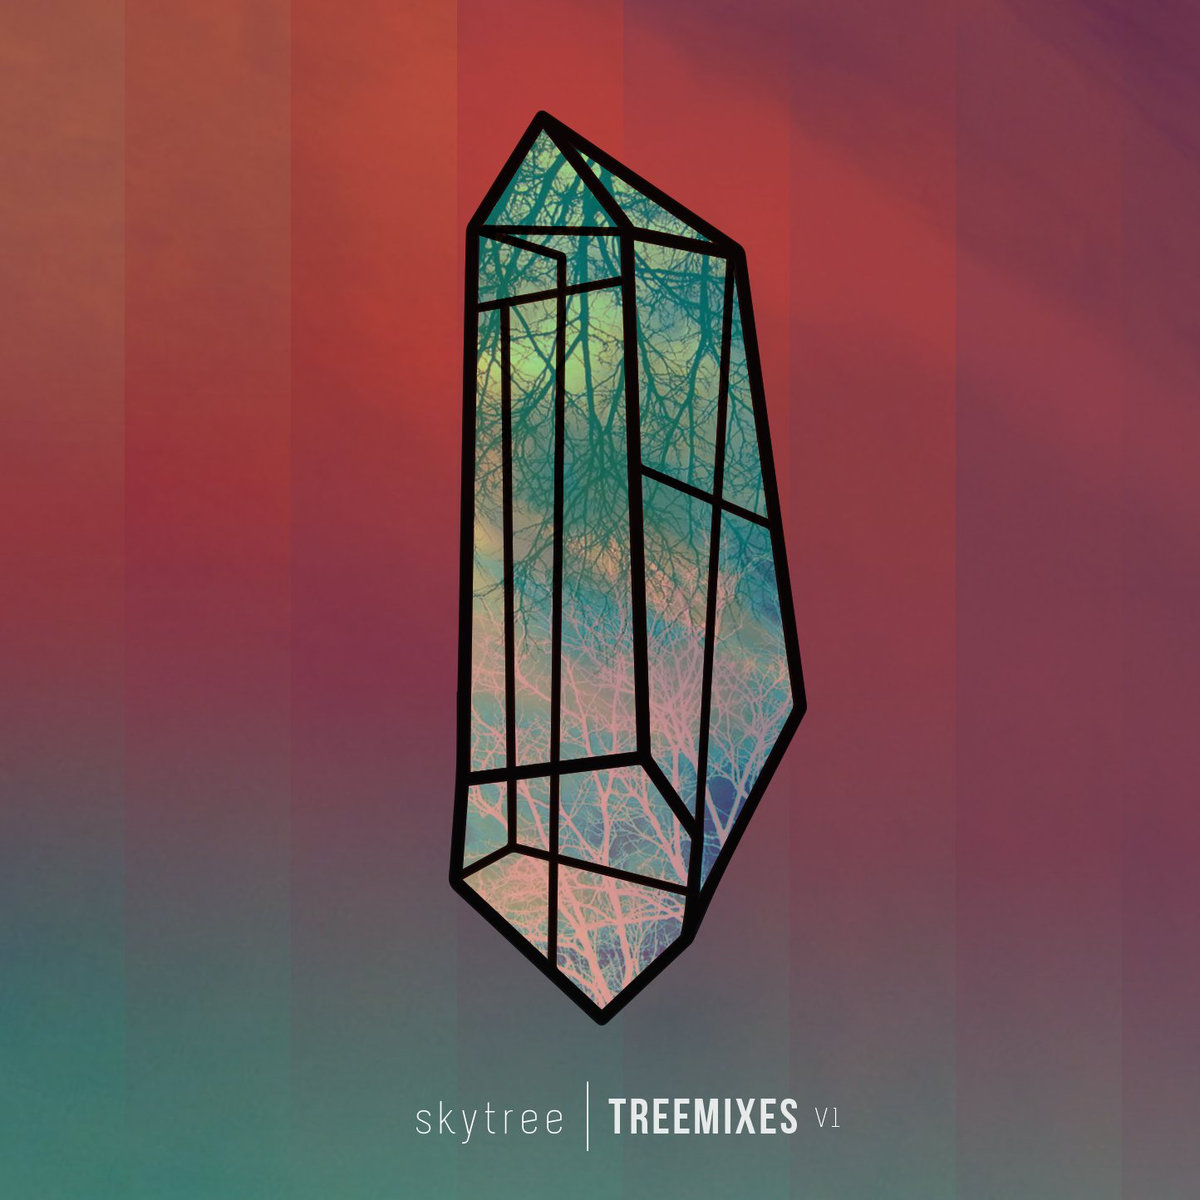 Skytree - Grandfather Twilight (Pericles remix) @ 'Treemixes V1' album (Austin)